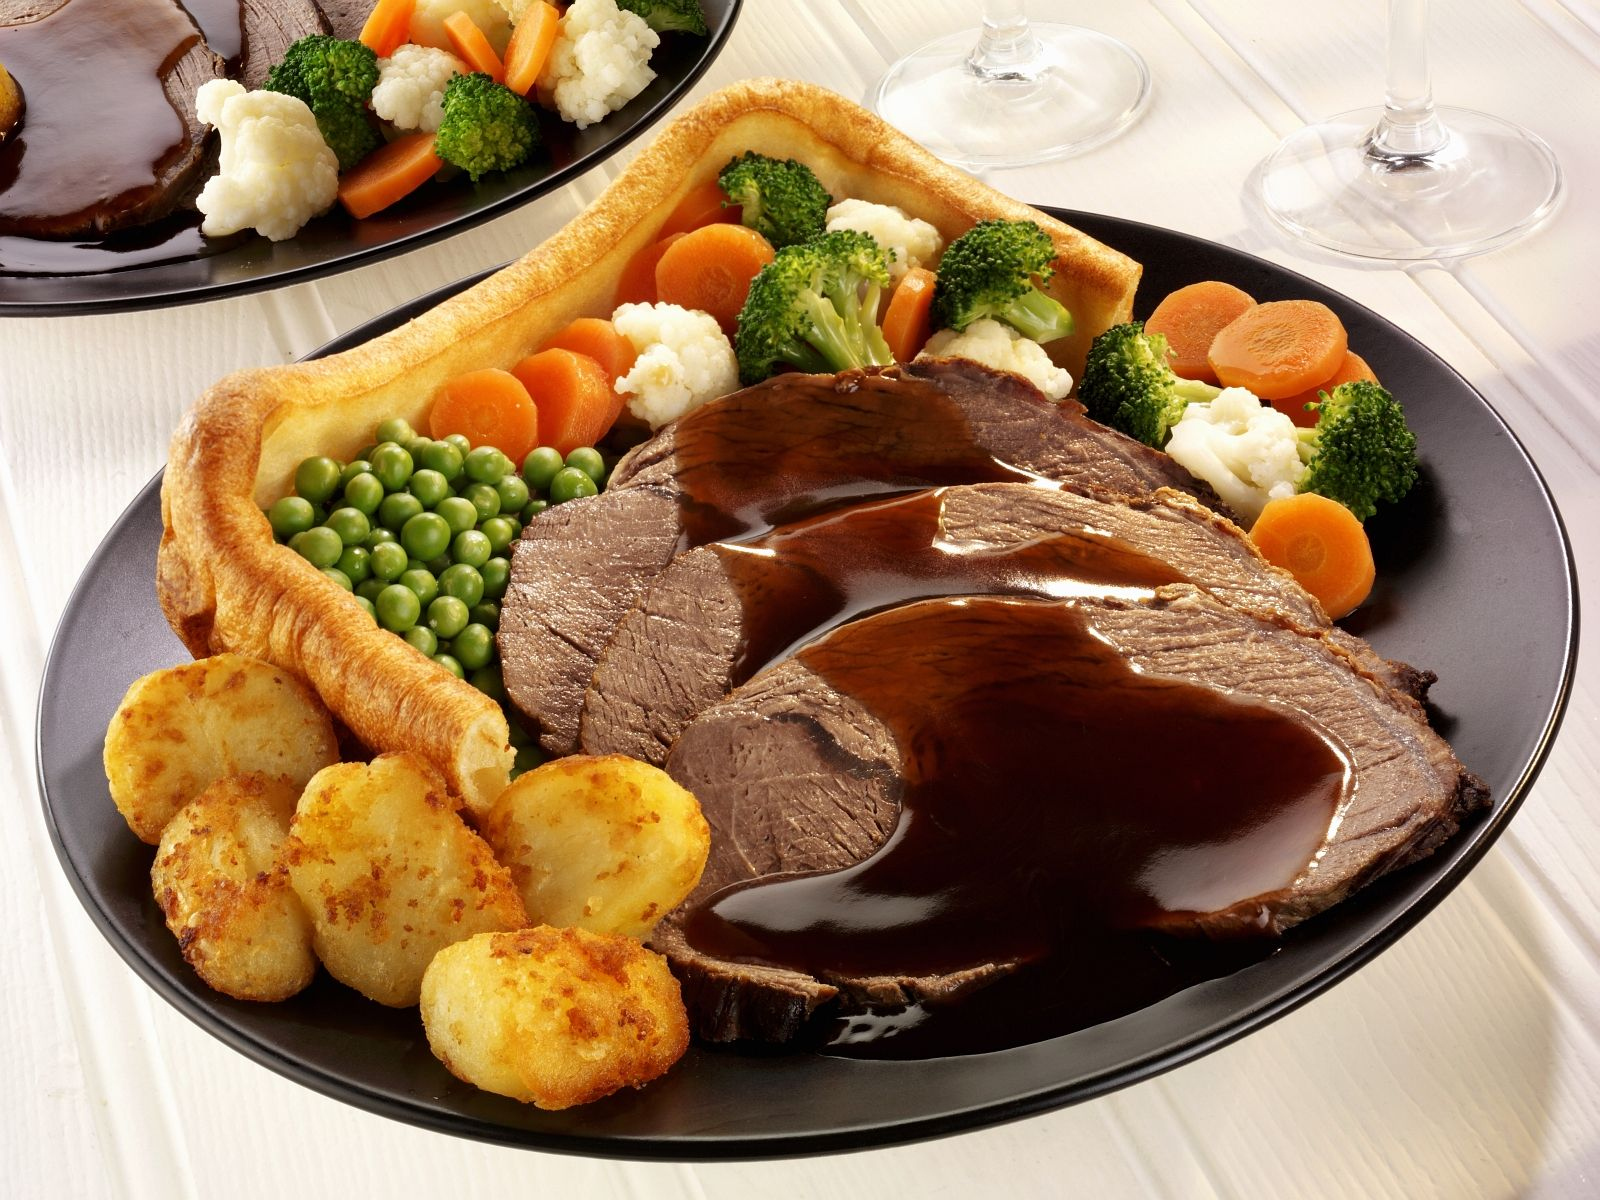 Roast Beef & Yorkshire Pudding - British Meals